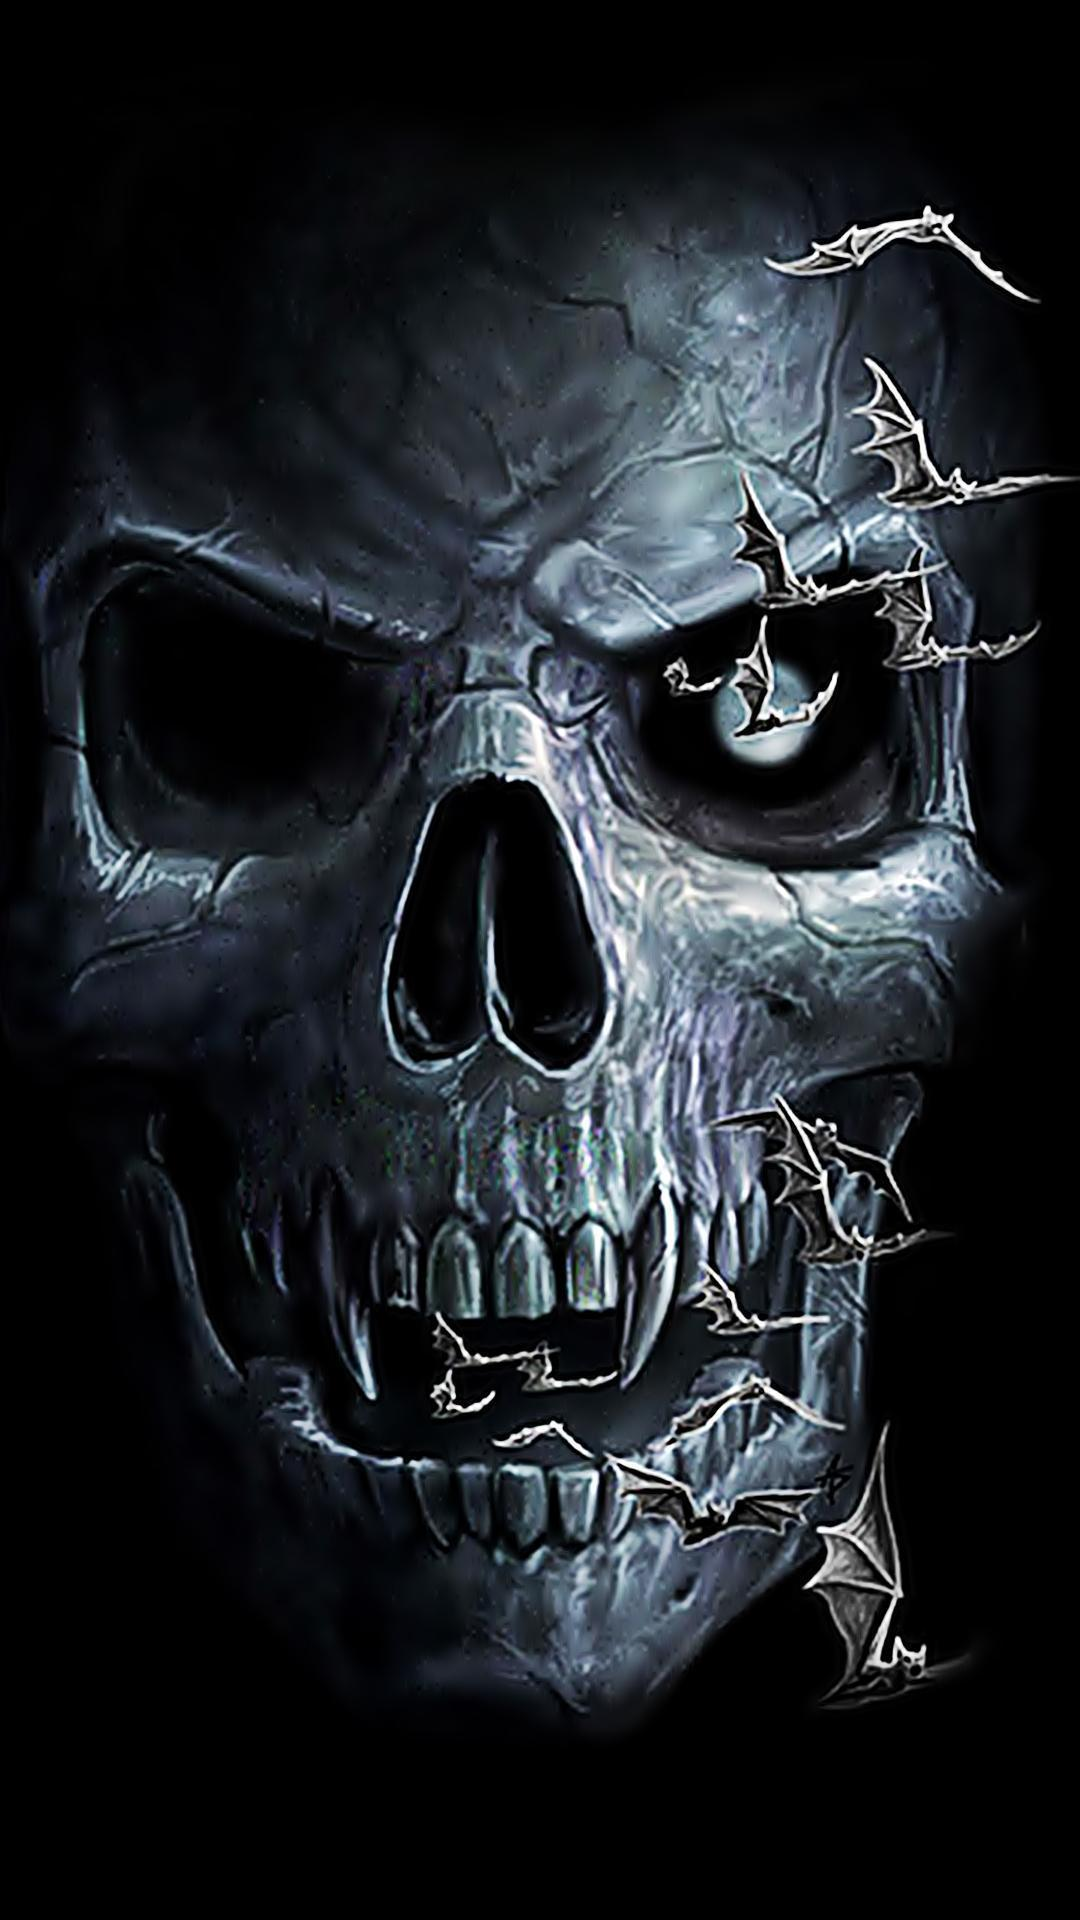 Android Amoled Skull Wallpapers - Wallpaper Cave